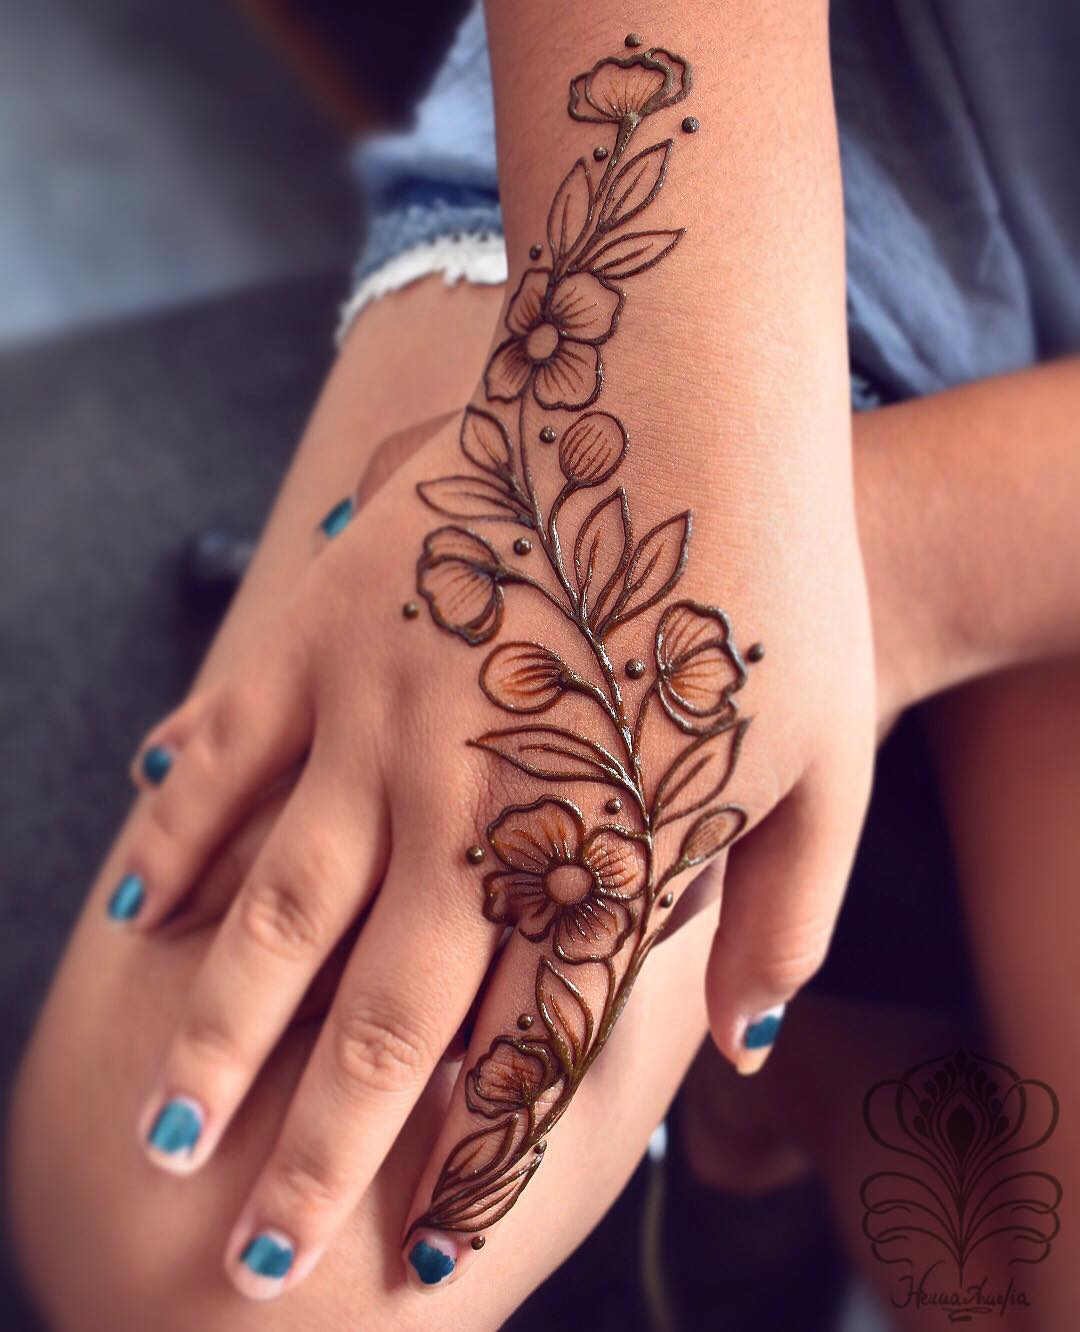 Repeat design: Easy Mehndi Designs Collection for Hand 2020